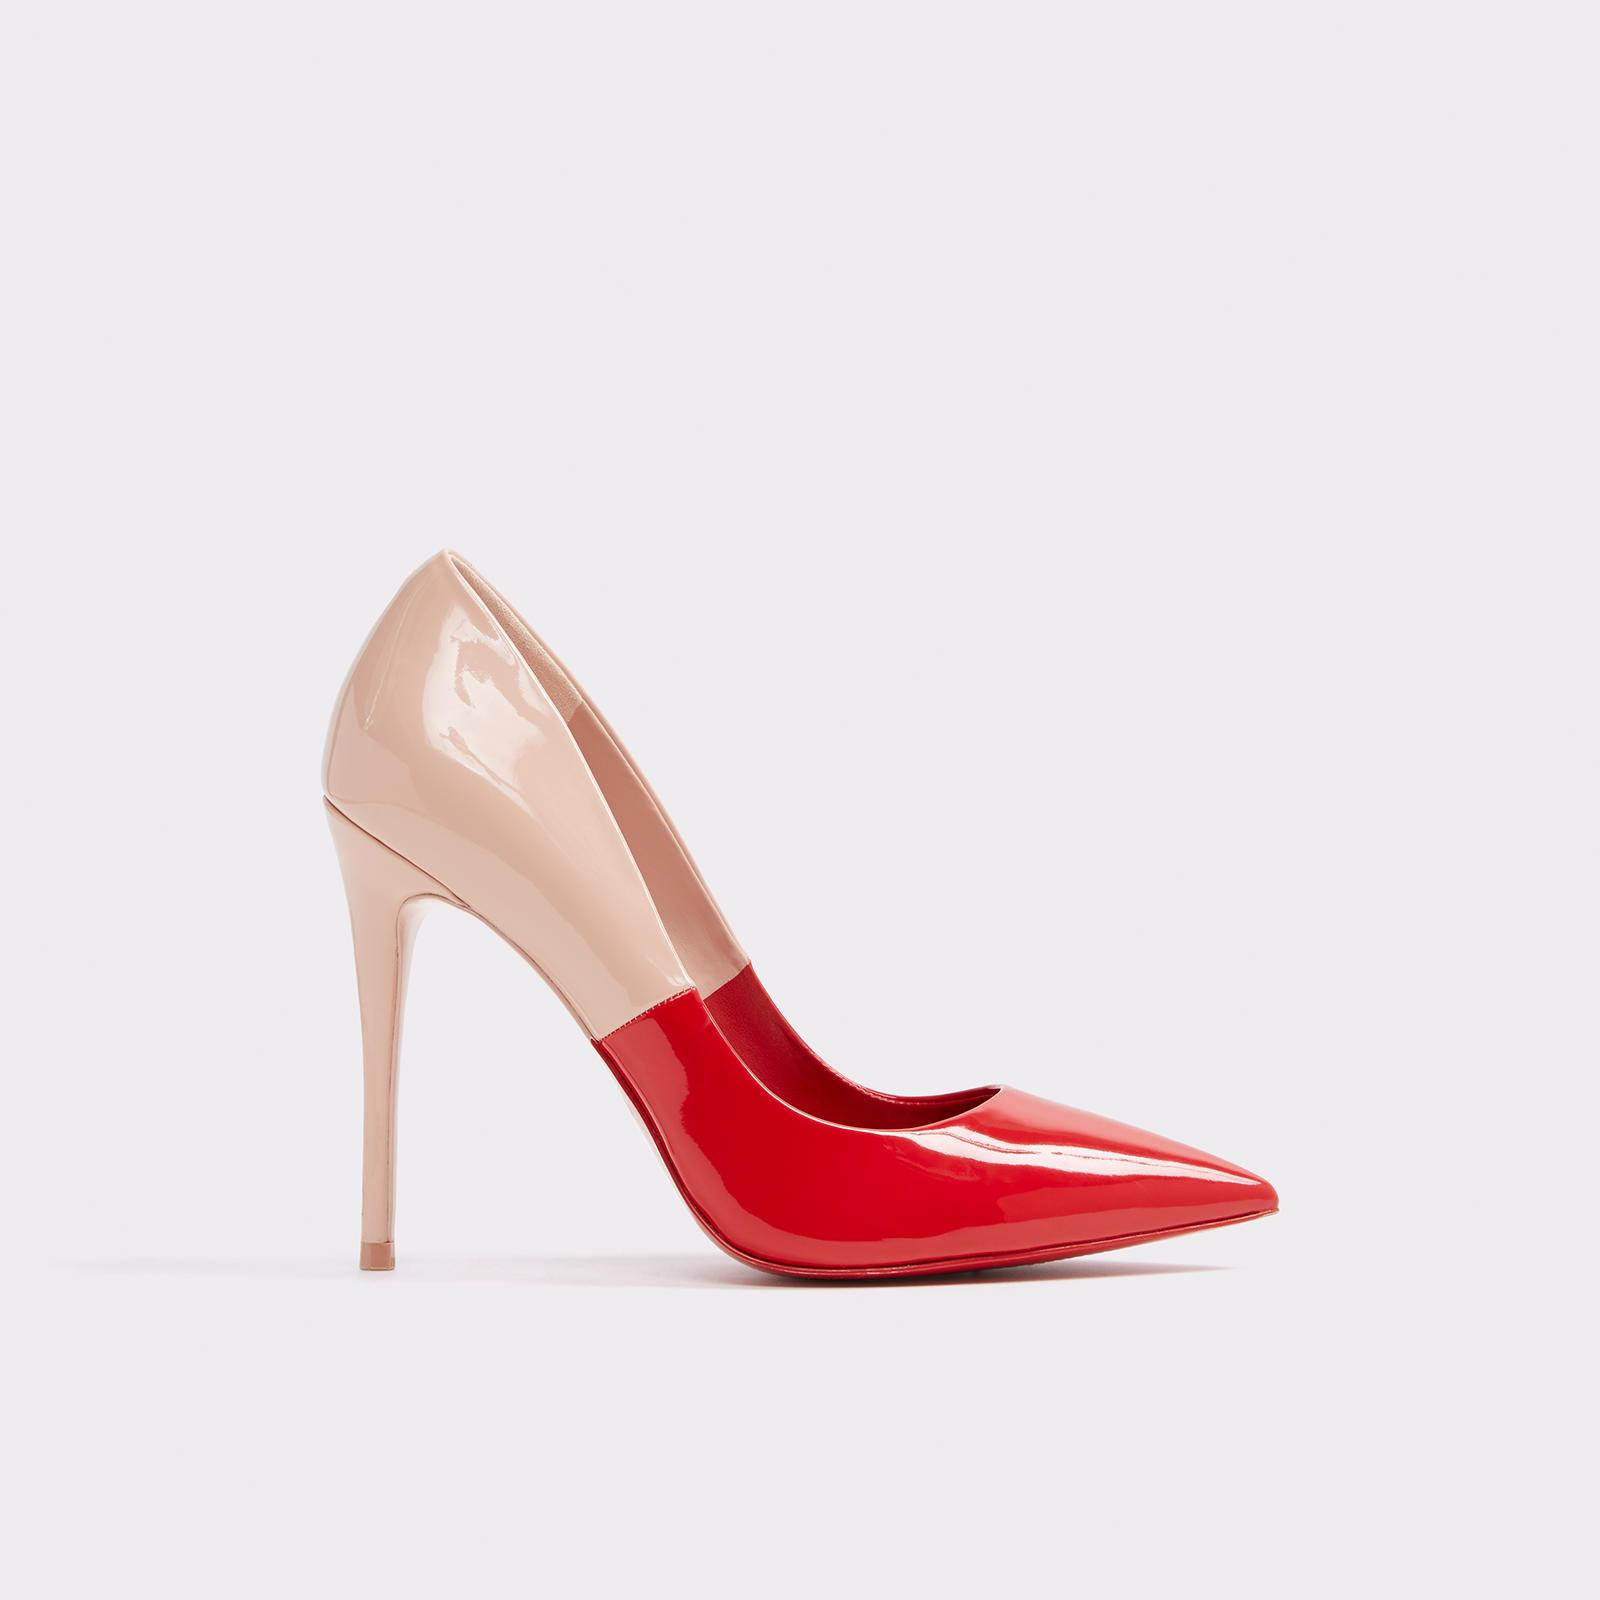 Nice Shoes For A Red Dress